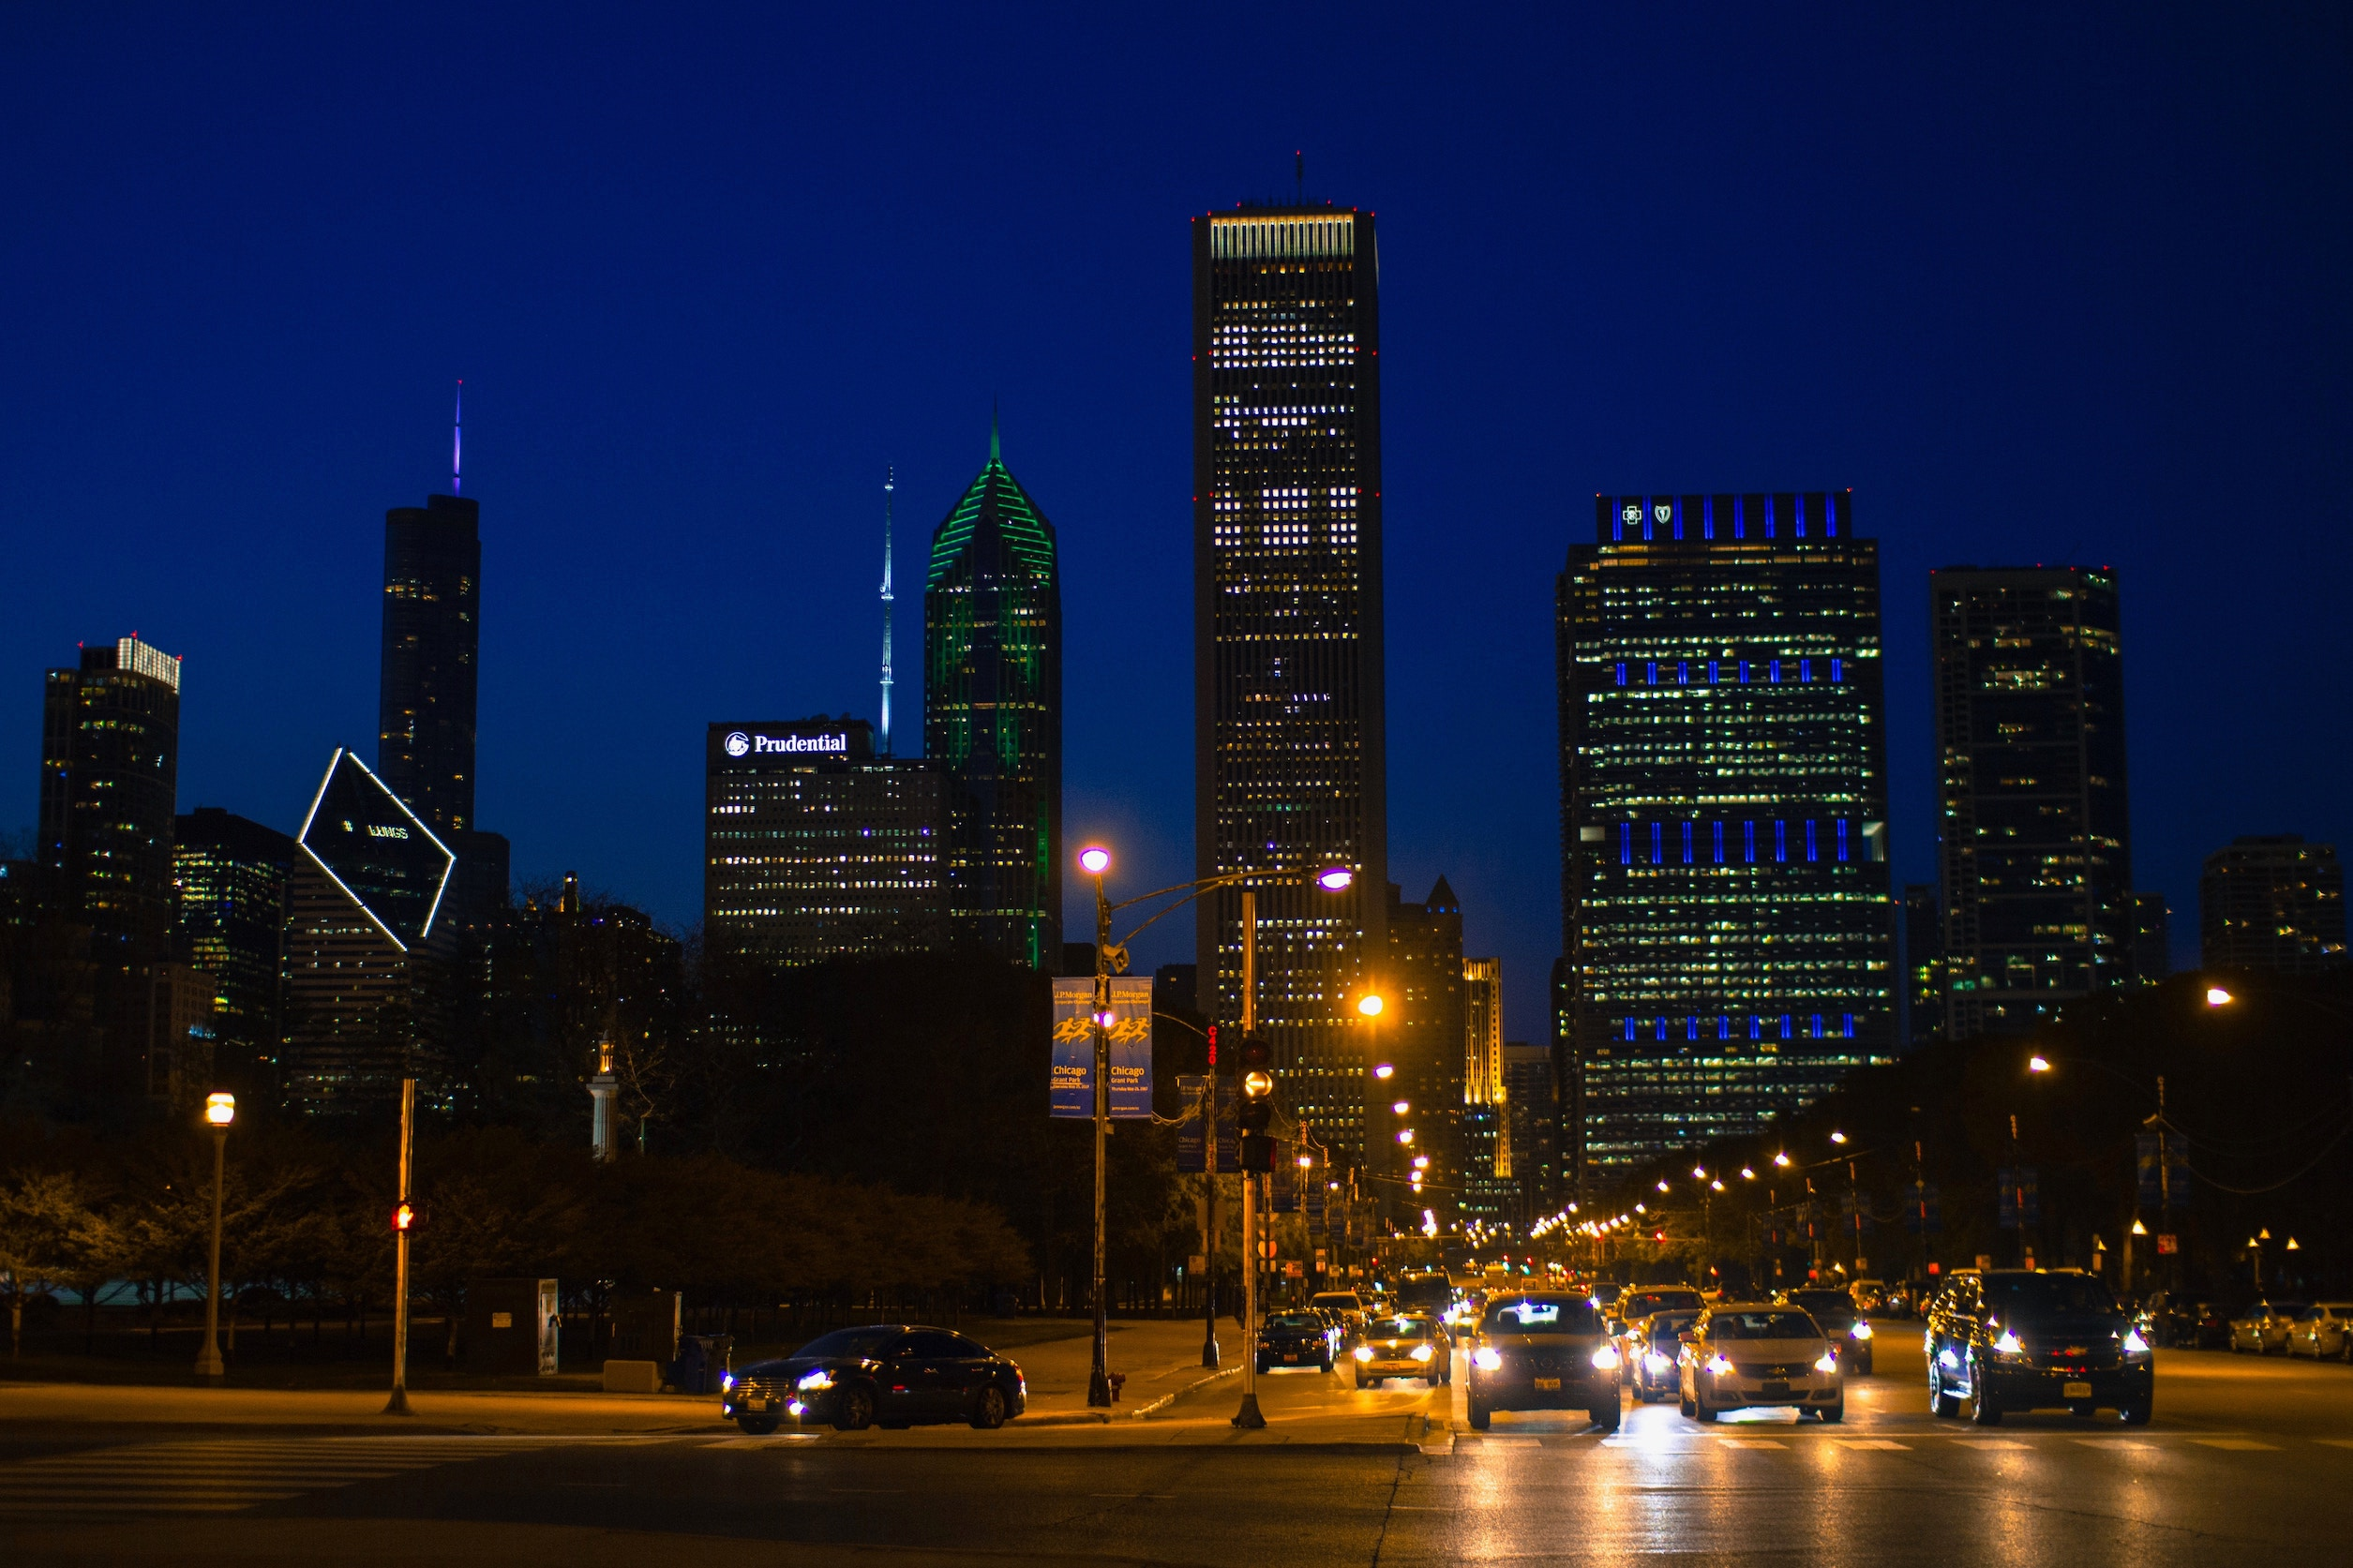 Cars waiting at light at night in Chicago